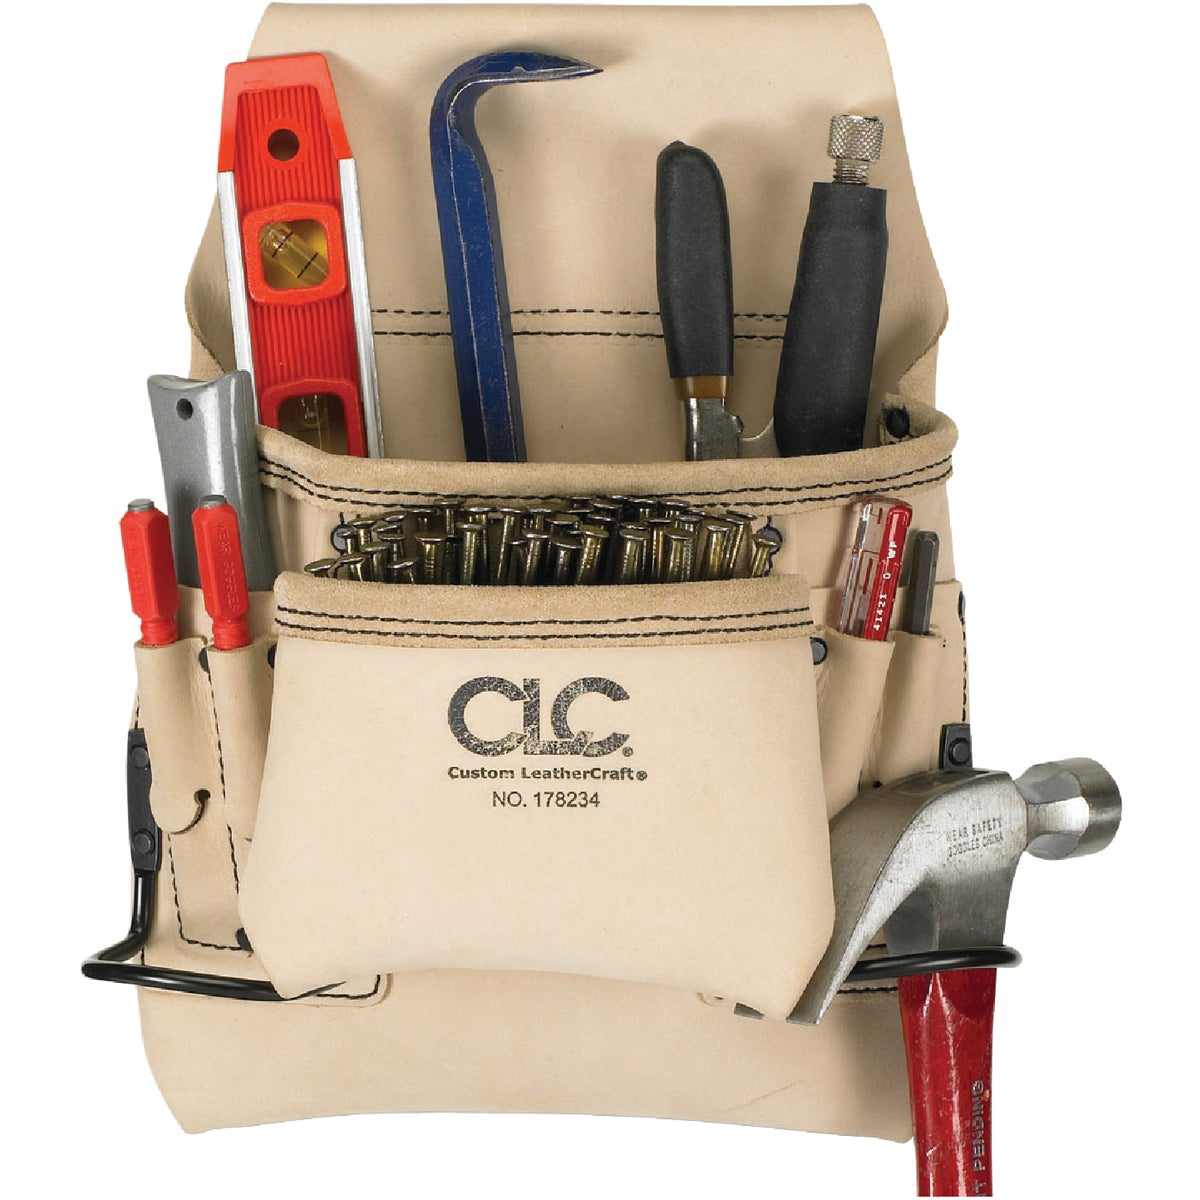 8-POCKET NAIL/TOOL BAG - 178234 by Custom Leathercraft